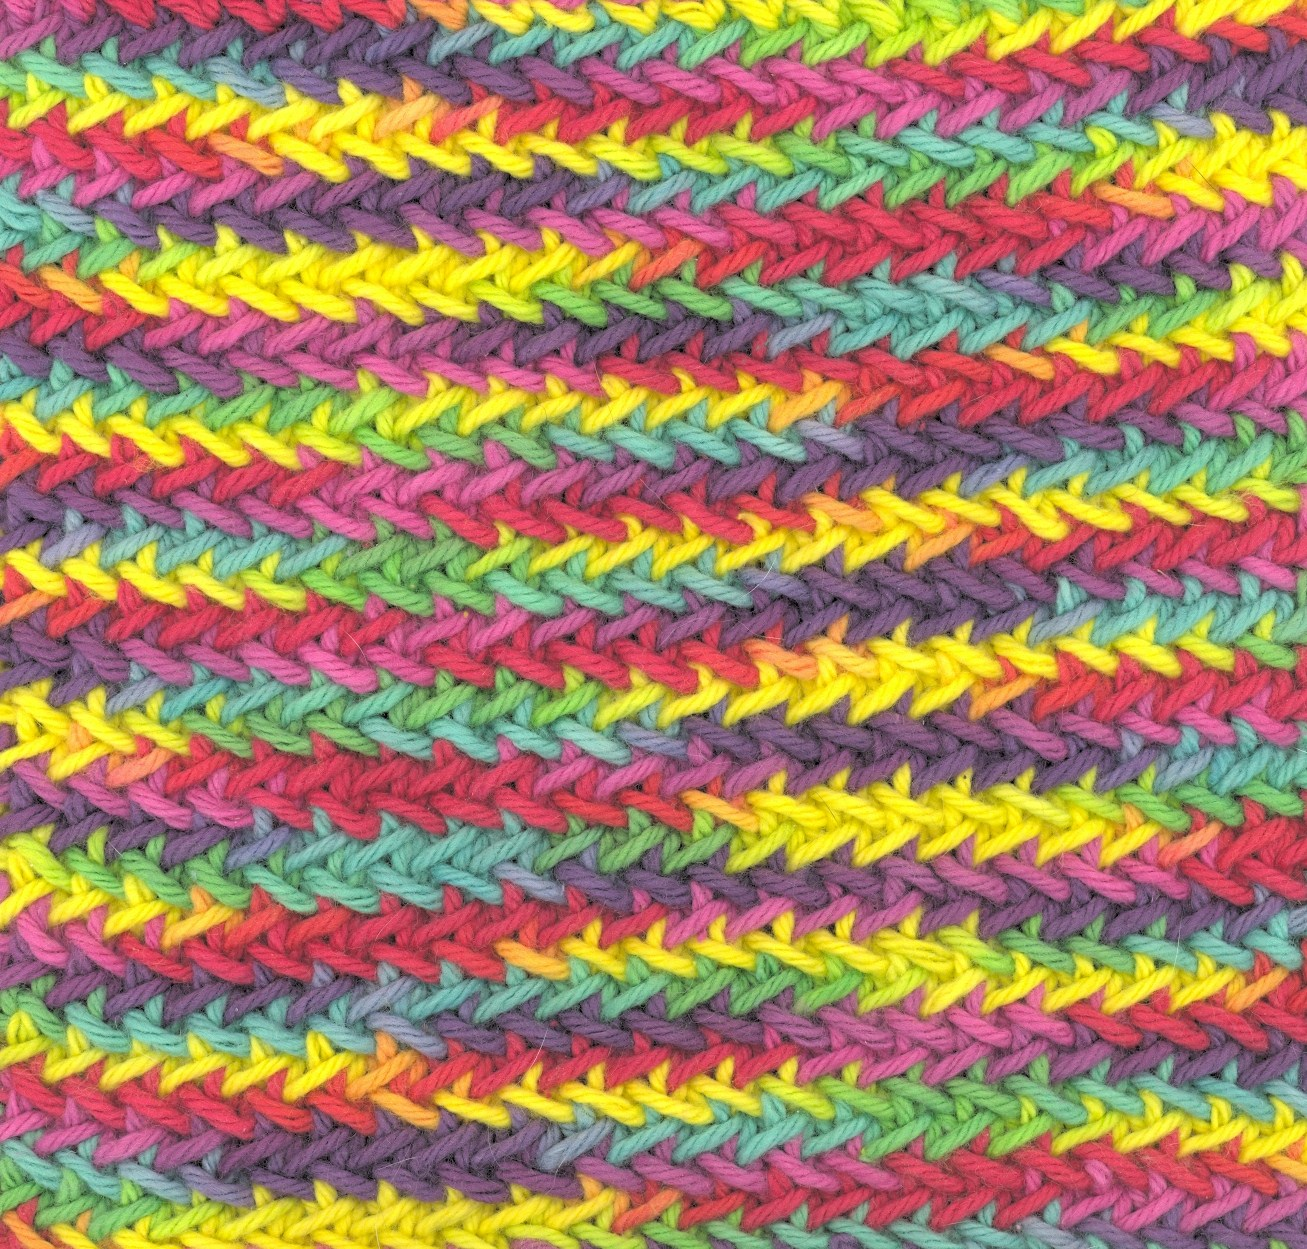 Knitting Yarn Over Before Purl Stitch : Sara s colorwave herringbone stitch dishcloth